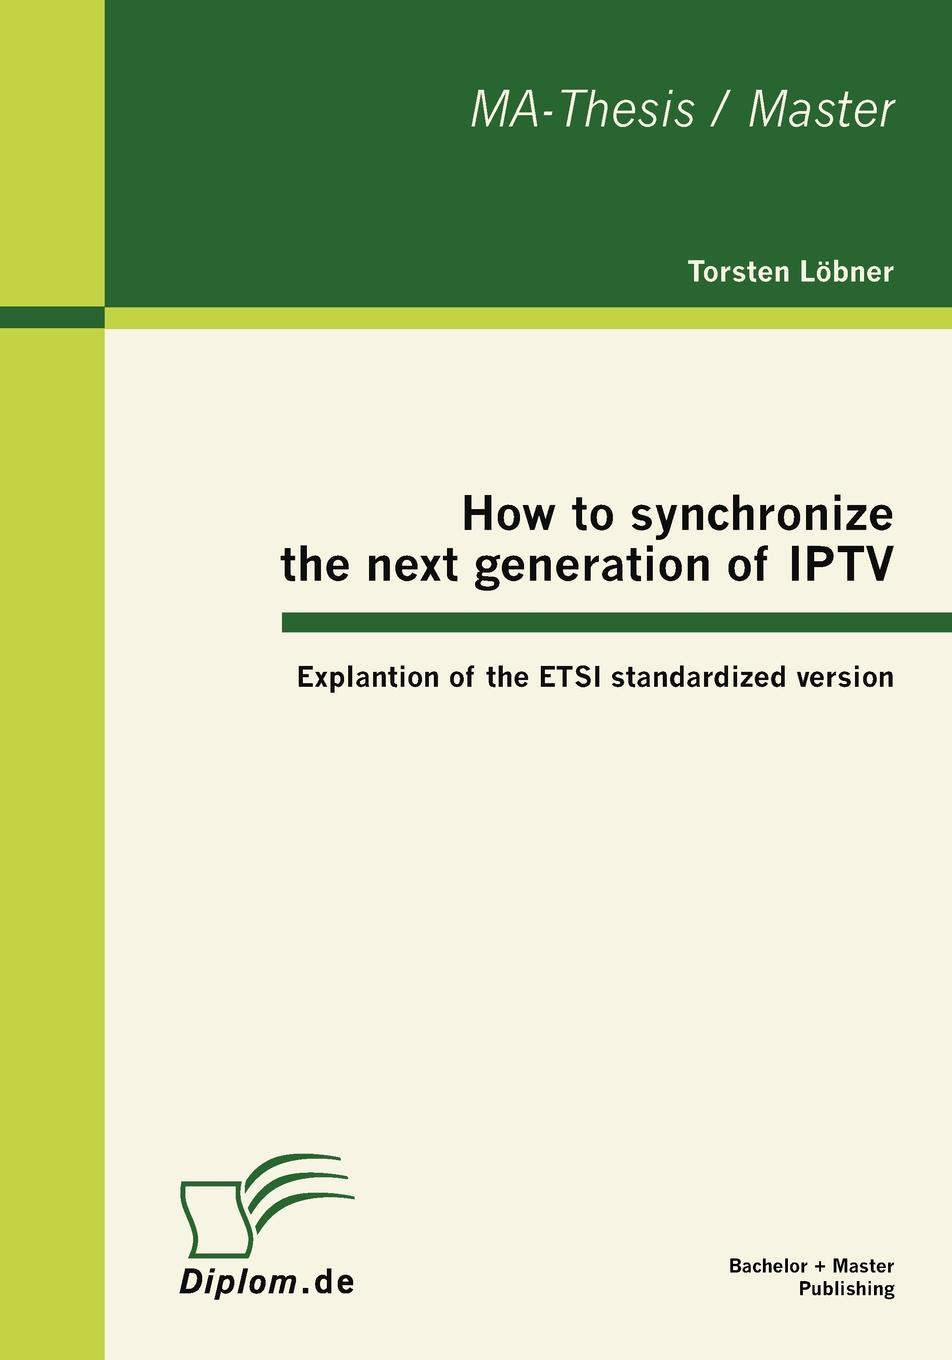 Torsten Löbner How to synchronize the next generation of IPTV. Explantion of the ETSI standardized version playboy after dark the legendary television show 3 dvd